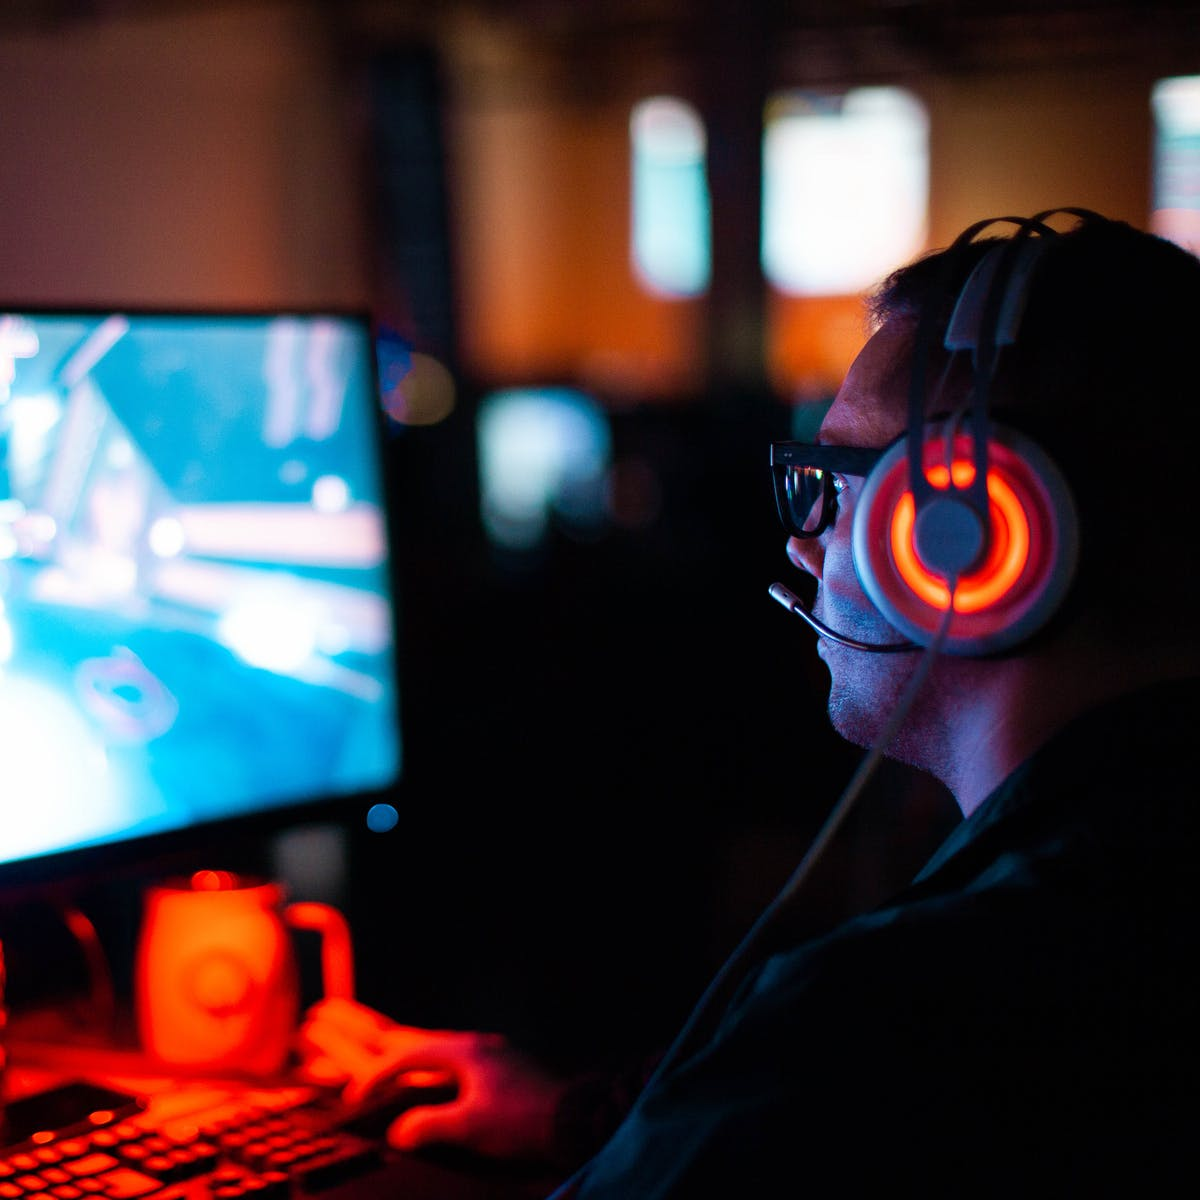 Scientists Say Posture Can Tell a Pro eSports Player From an Amateur